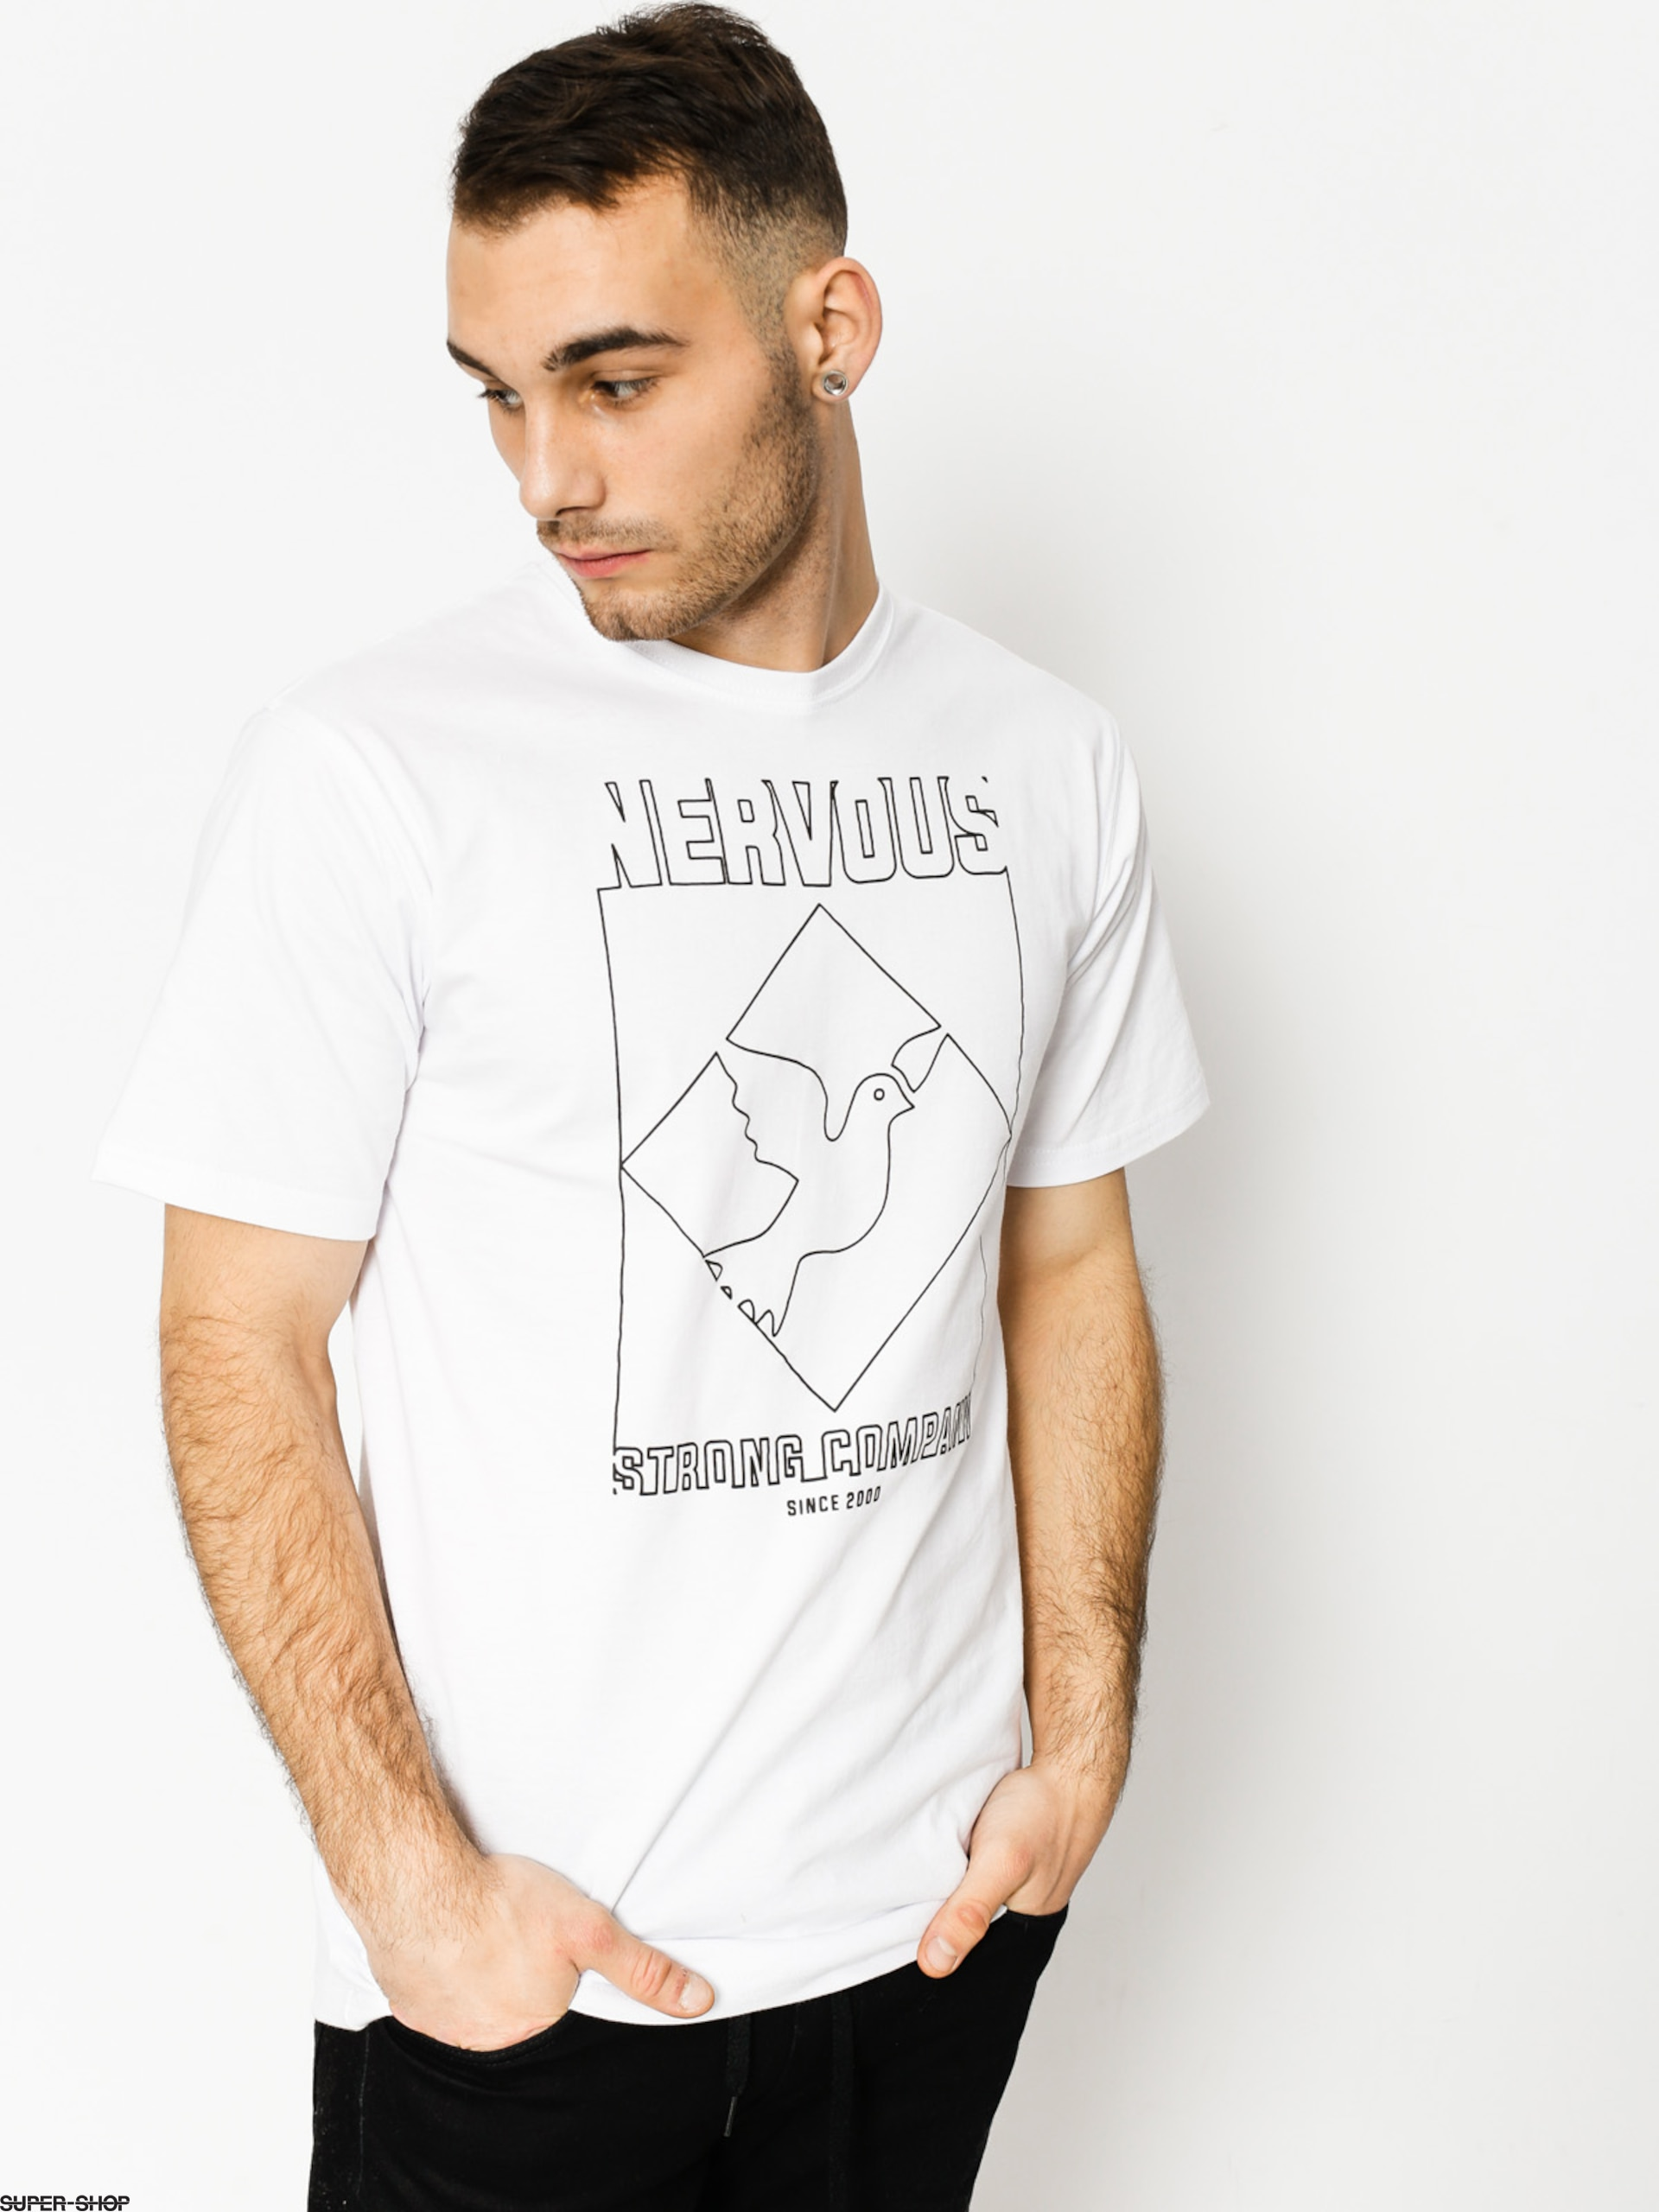 Nervous T-shirt Wire